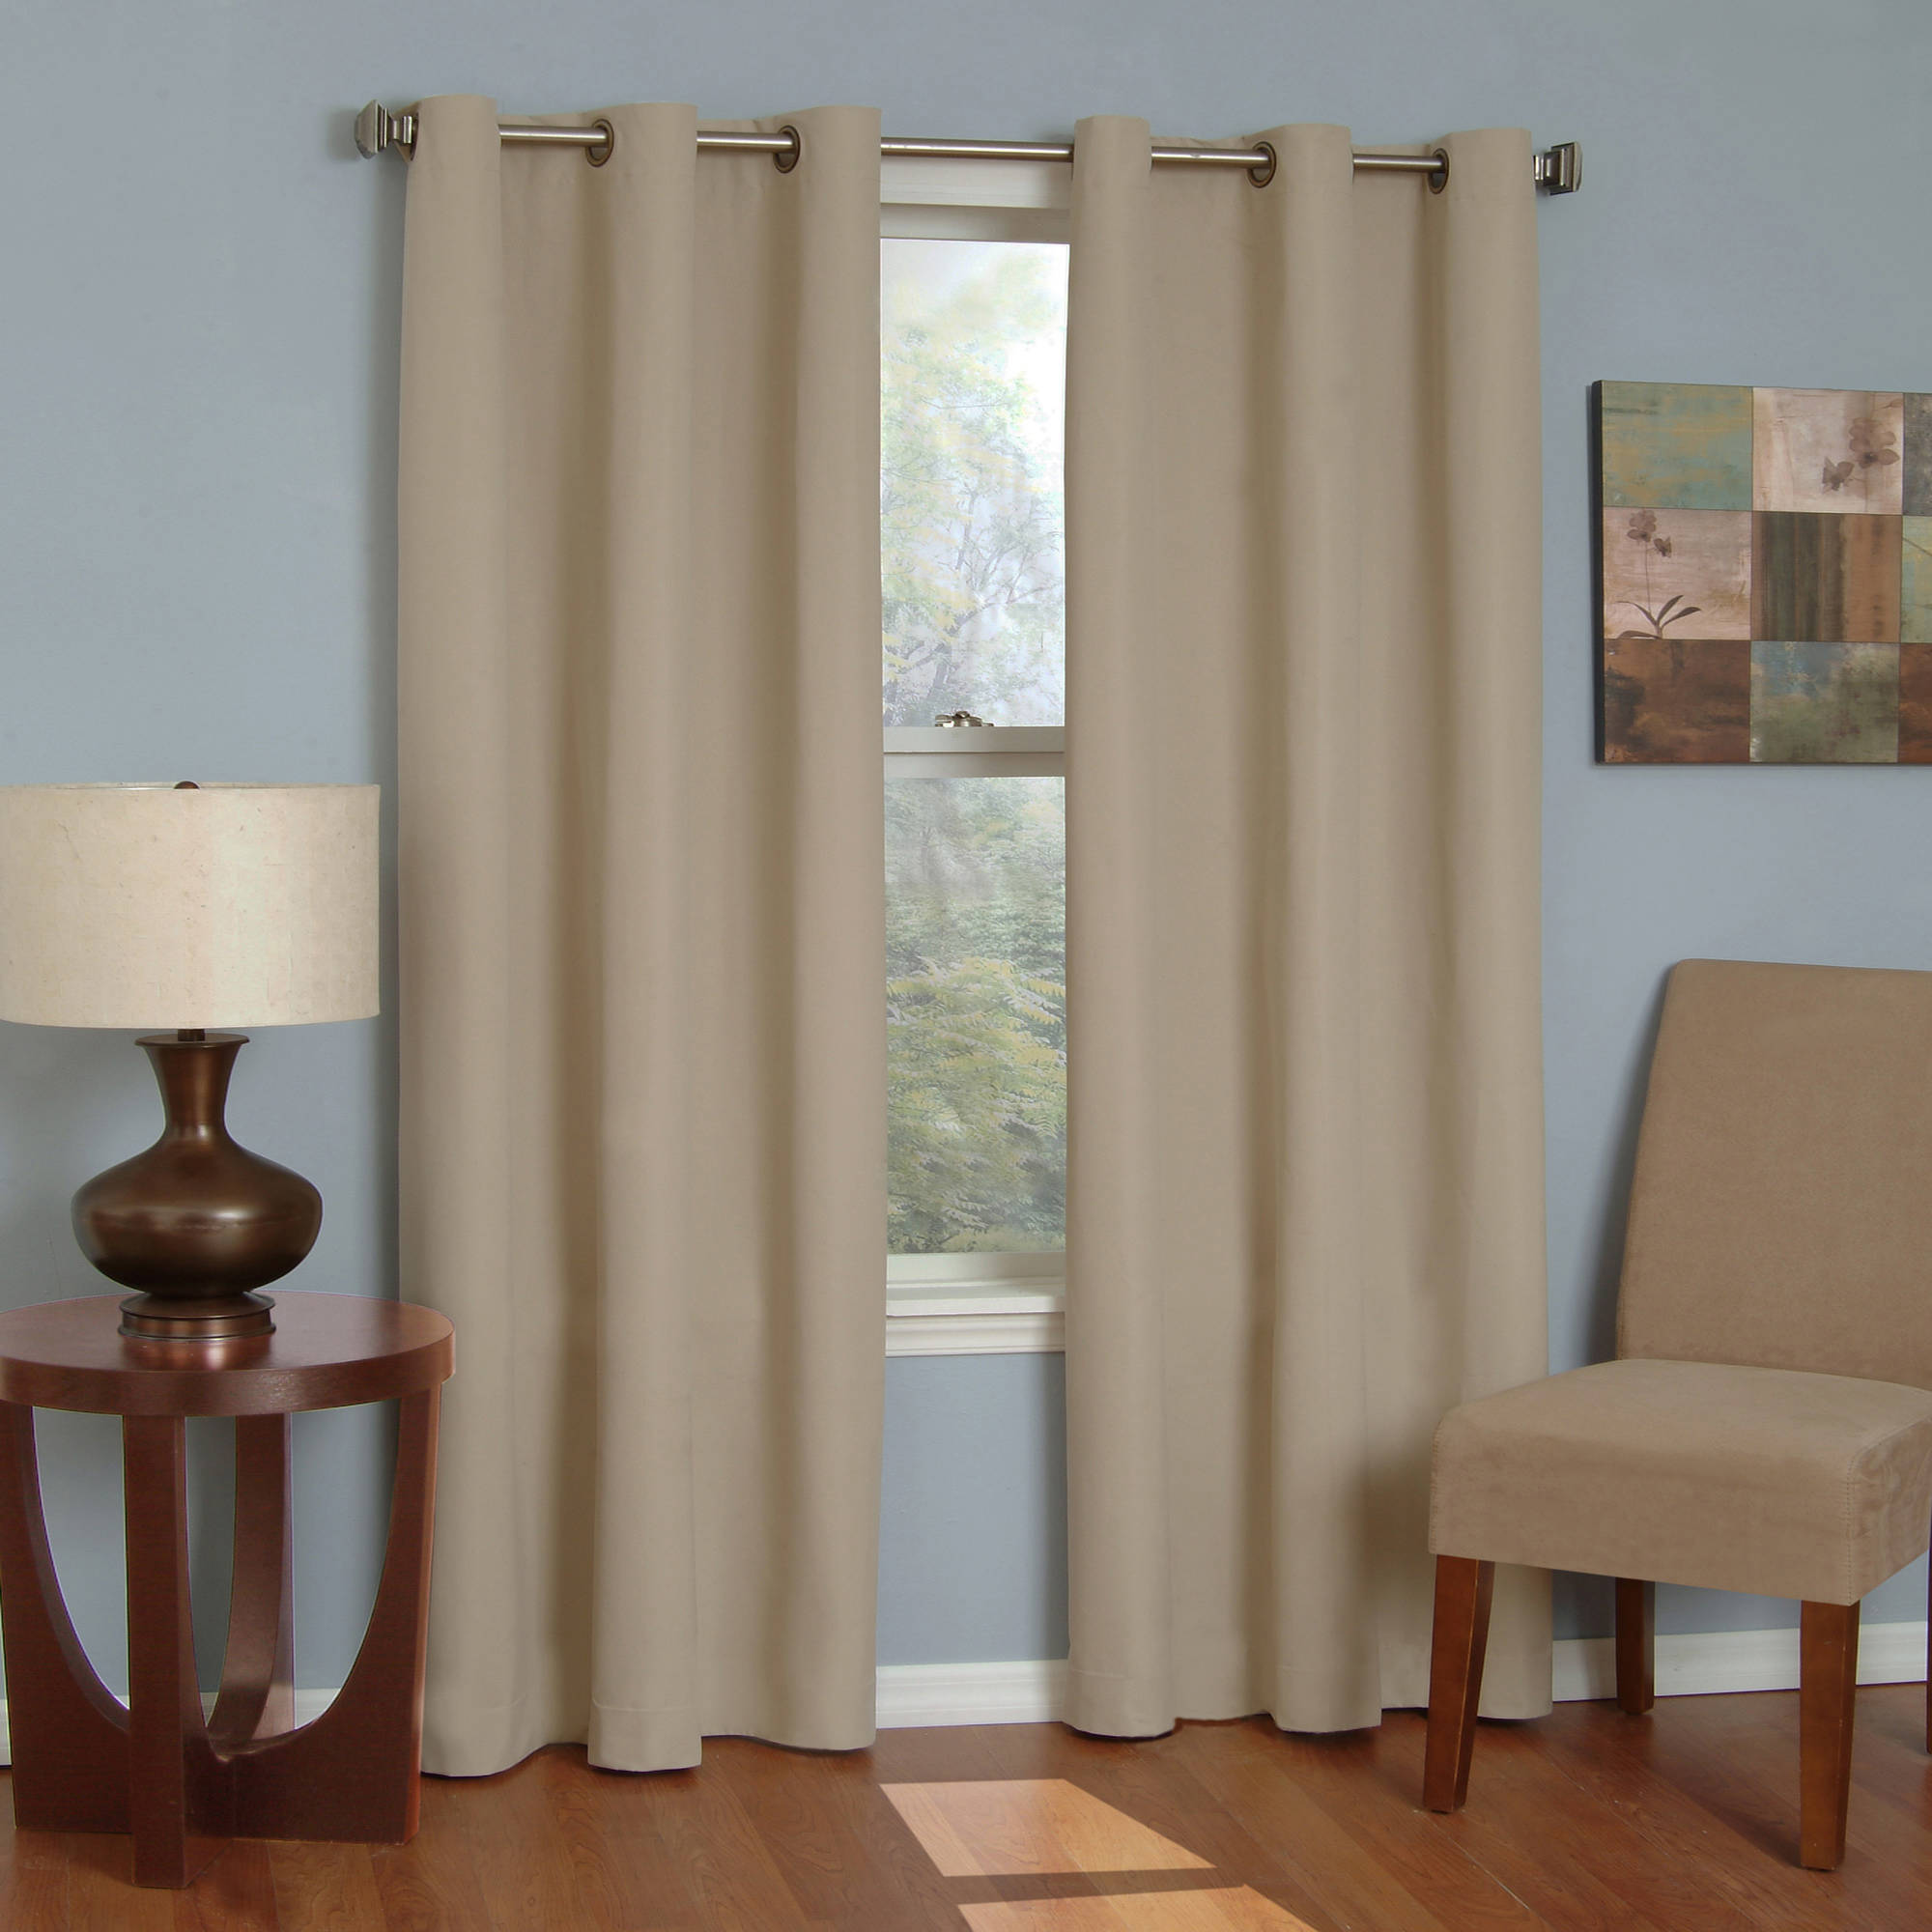 Eclipse Curtains Microfiber Grommet Blackout Energy-Efficient Curtain Panel Available In Multiple Colors And Sizes